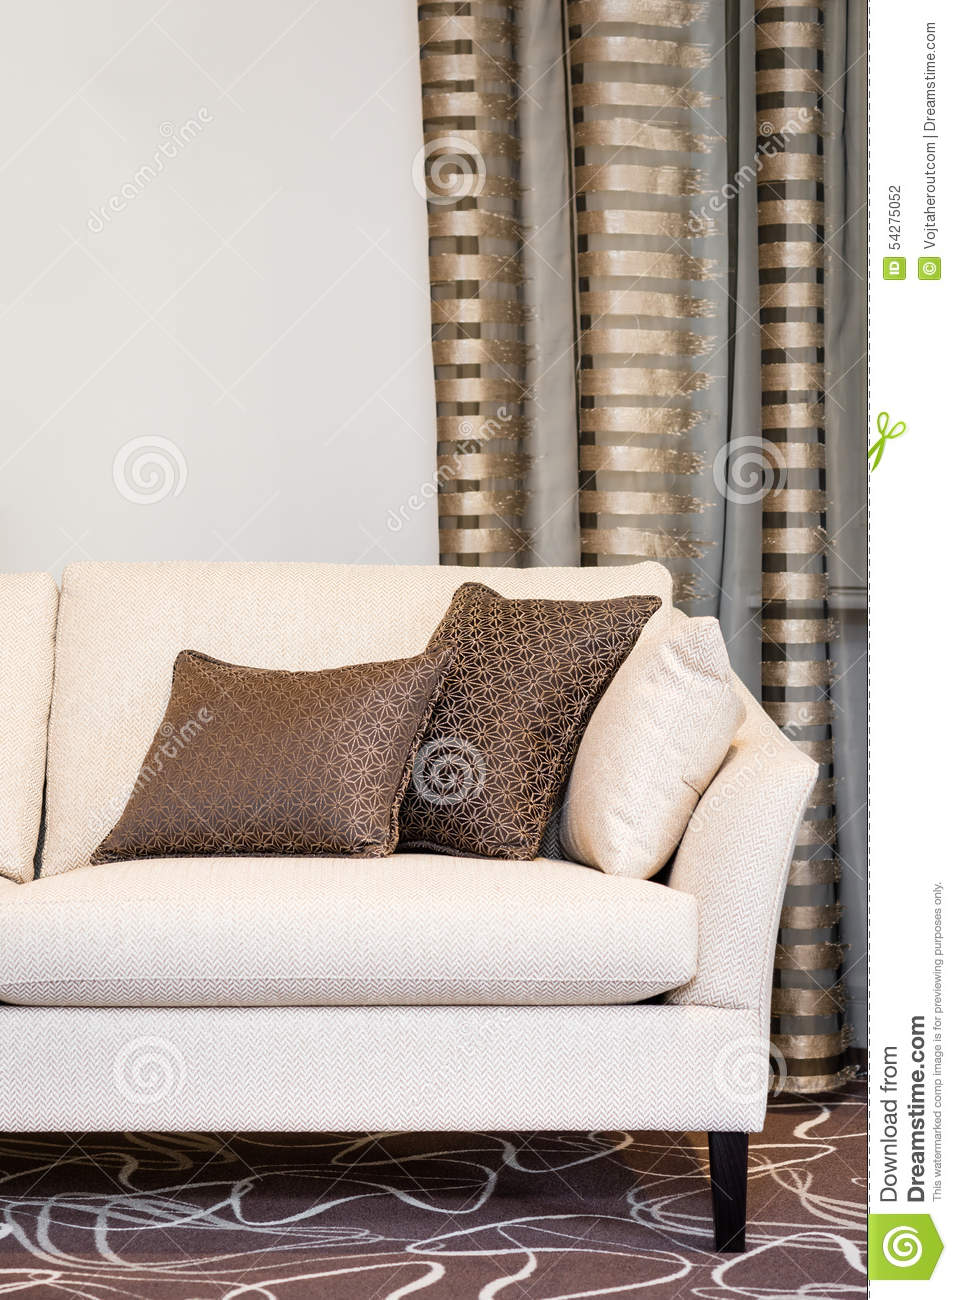 Brown Pillows On Empty Beige Sofa Stock Photo